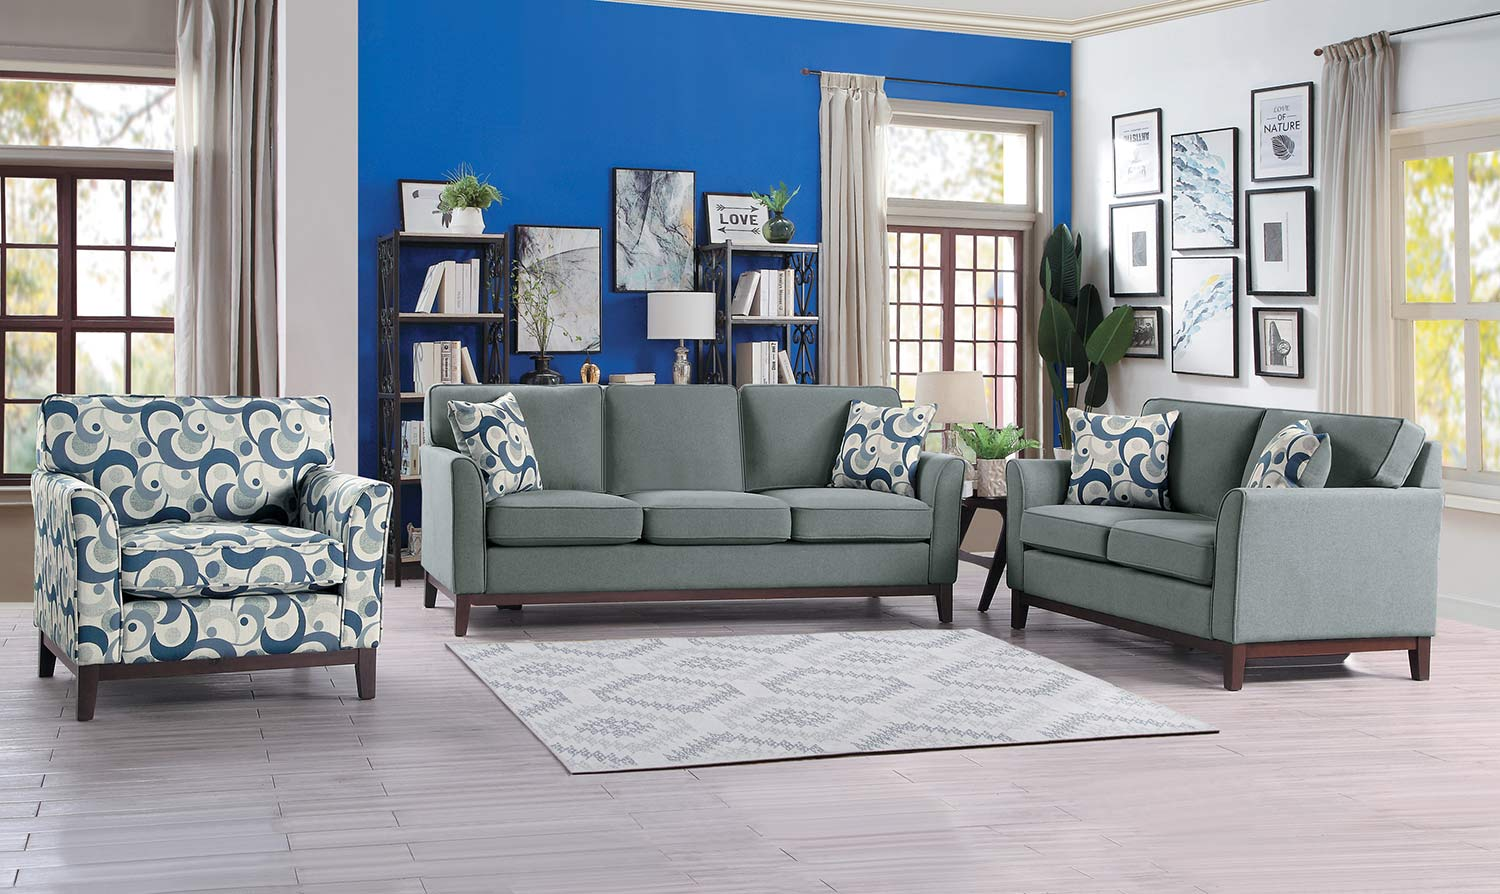 Homelegance Blue Lake Sofa Set - Gray